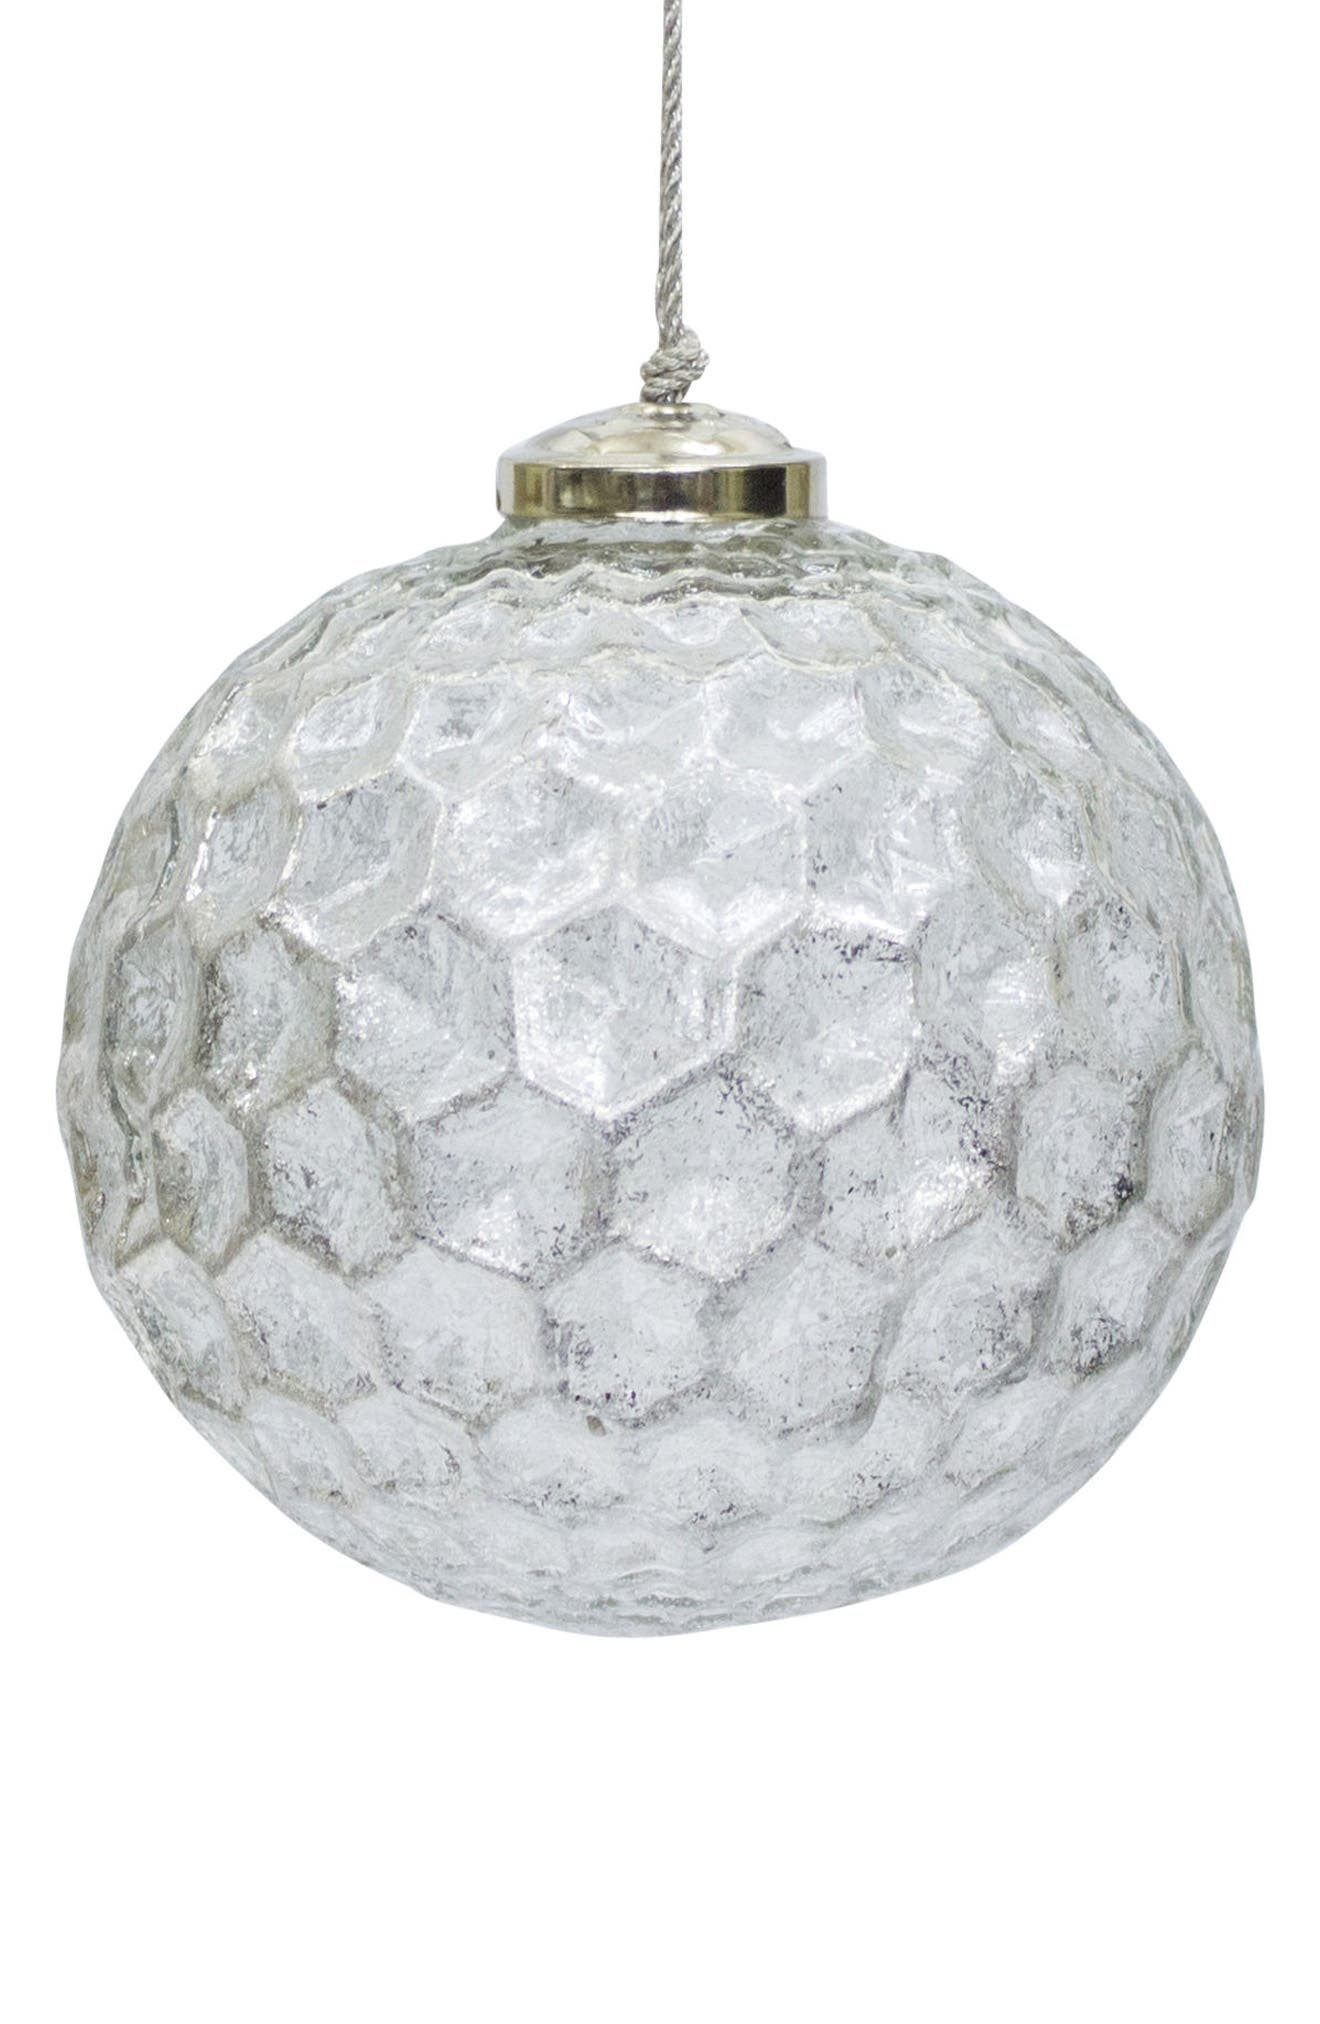 Dimpled Ball Ornament,                             Main thumbnail 1, color,                             020